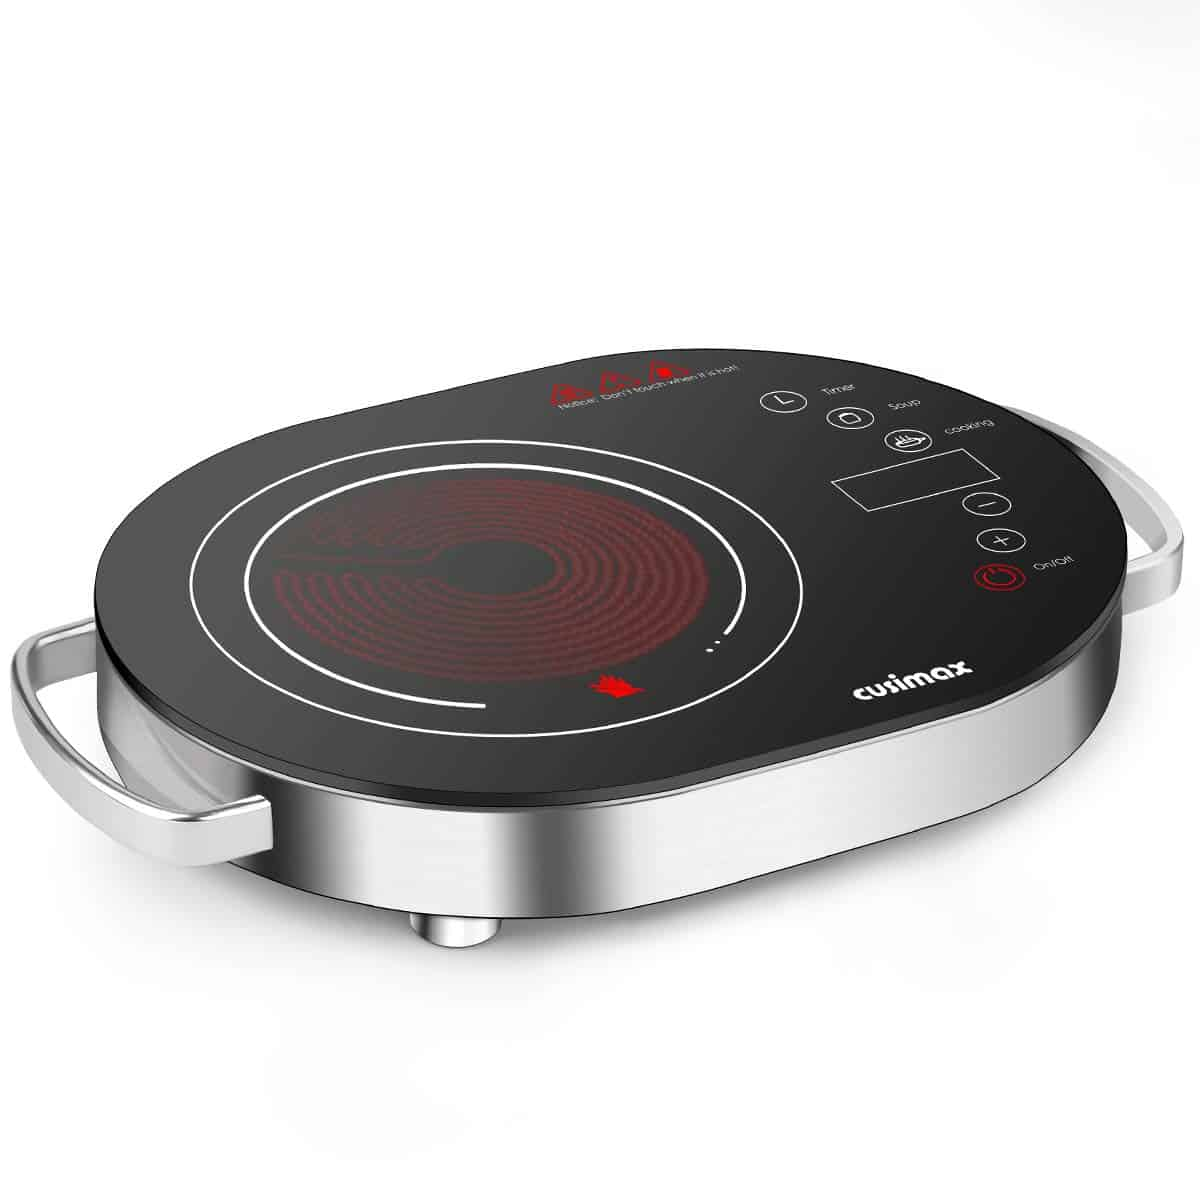 Cusimax Ceramic Glass Cooktop